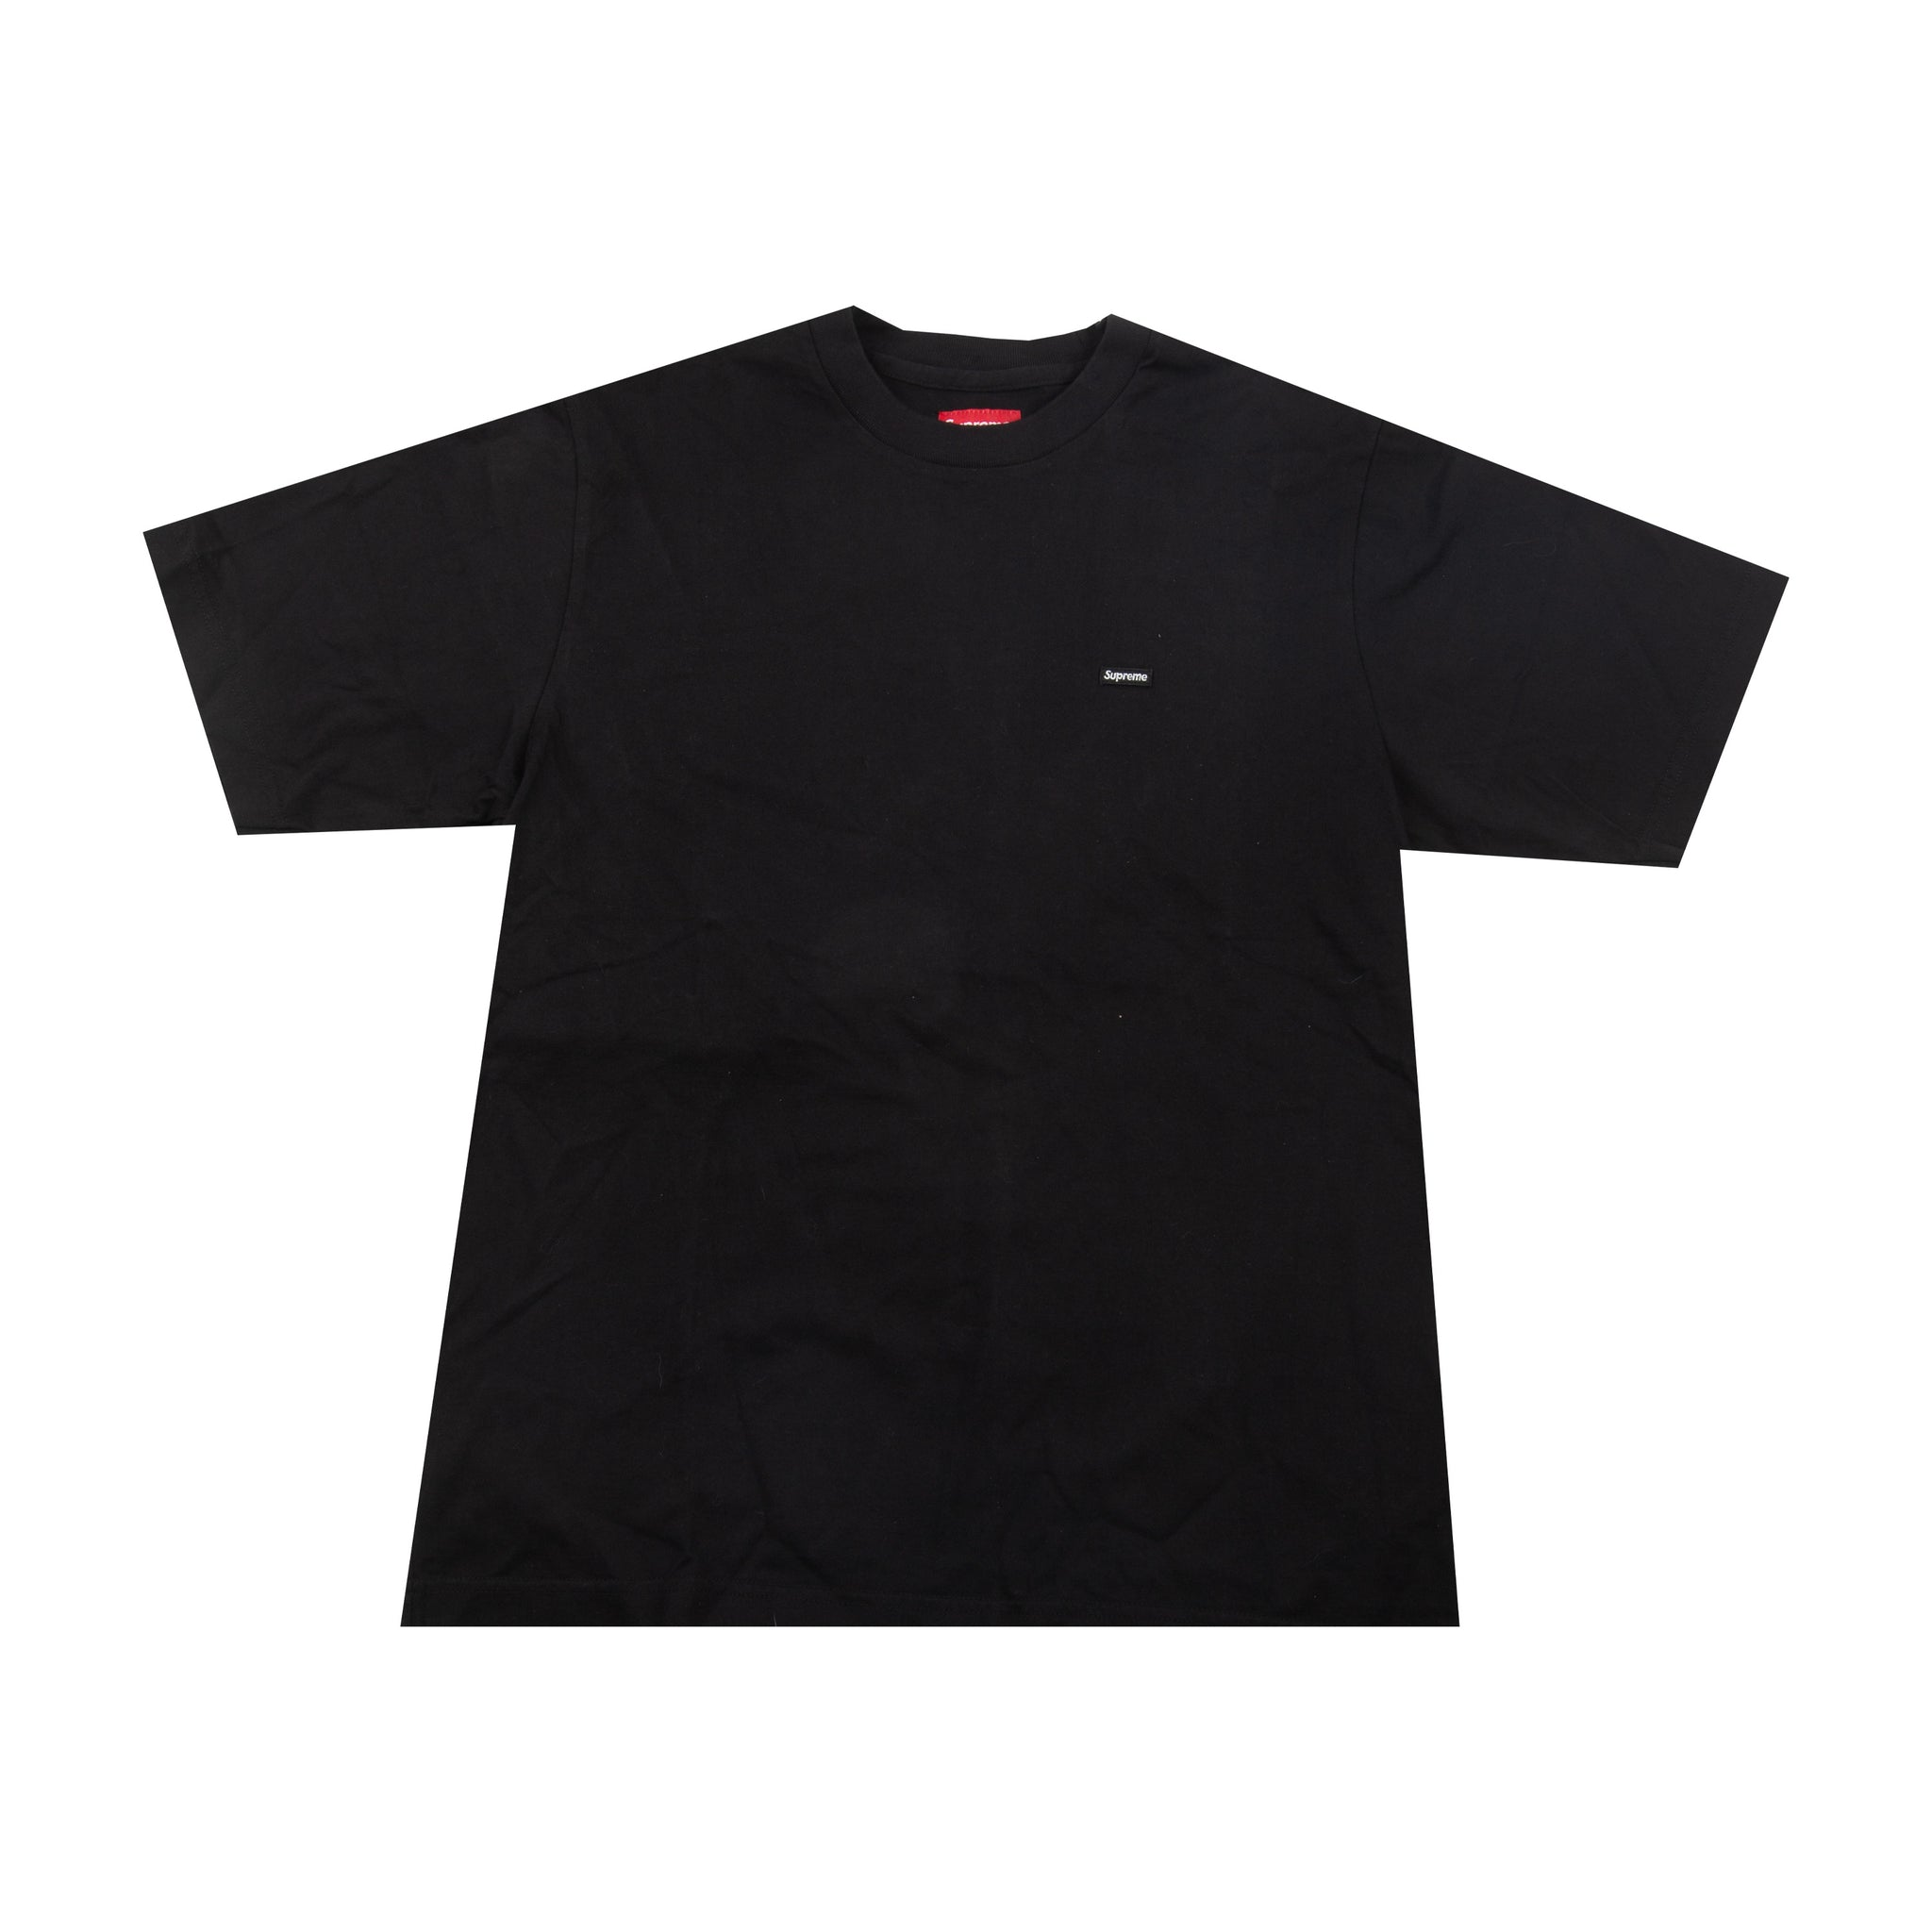 Supreme Black Small Box Logo Tee